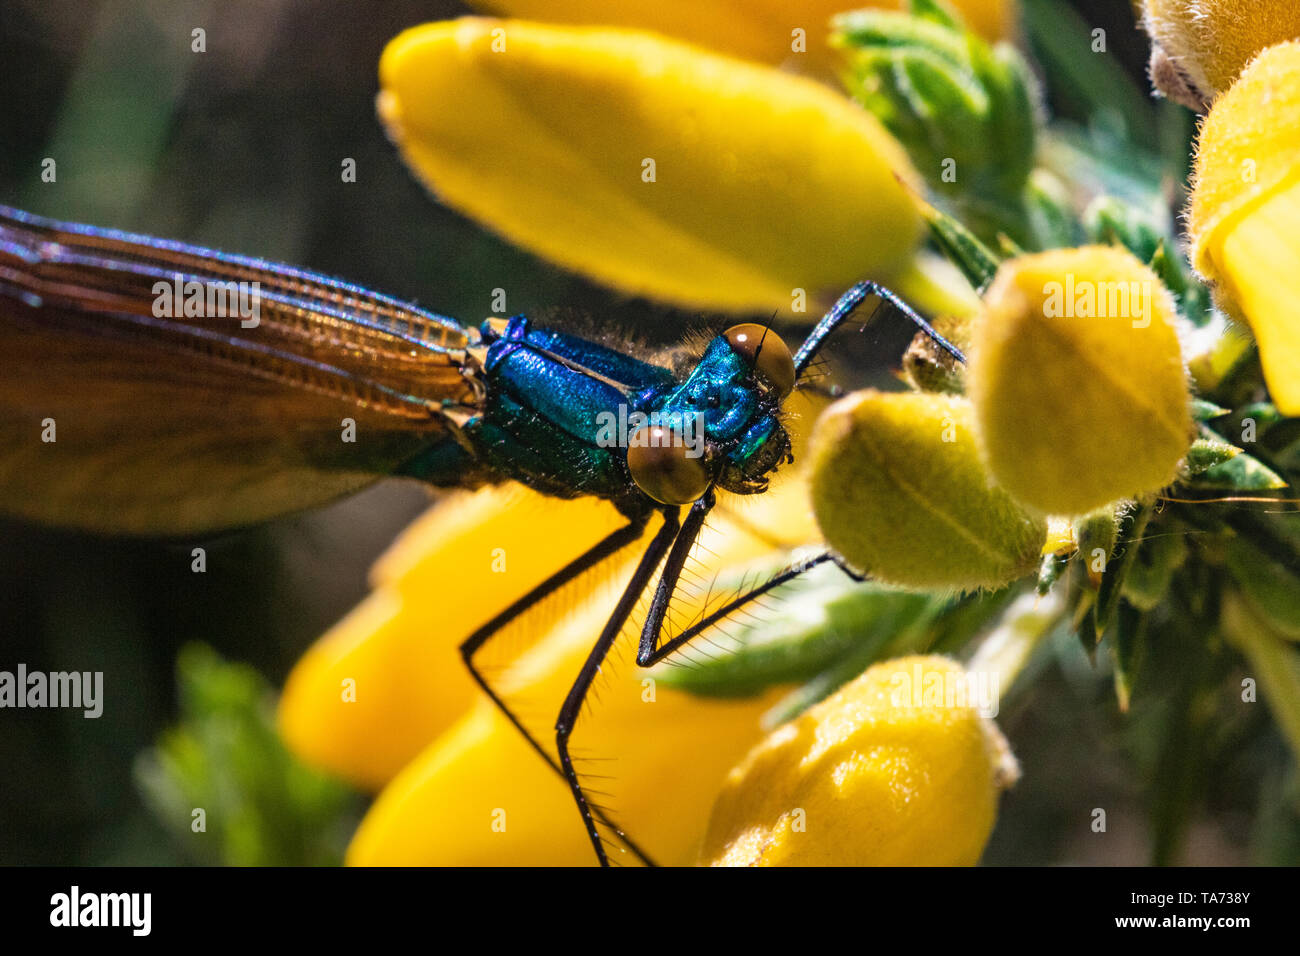 Detailed Head Shot of a Male Demoiselle Agrion Damselfly (Calopteryx virgo) Resting on a Gorse Flower on a Warm Spring Day. Stock Photo